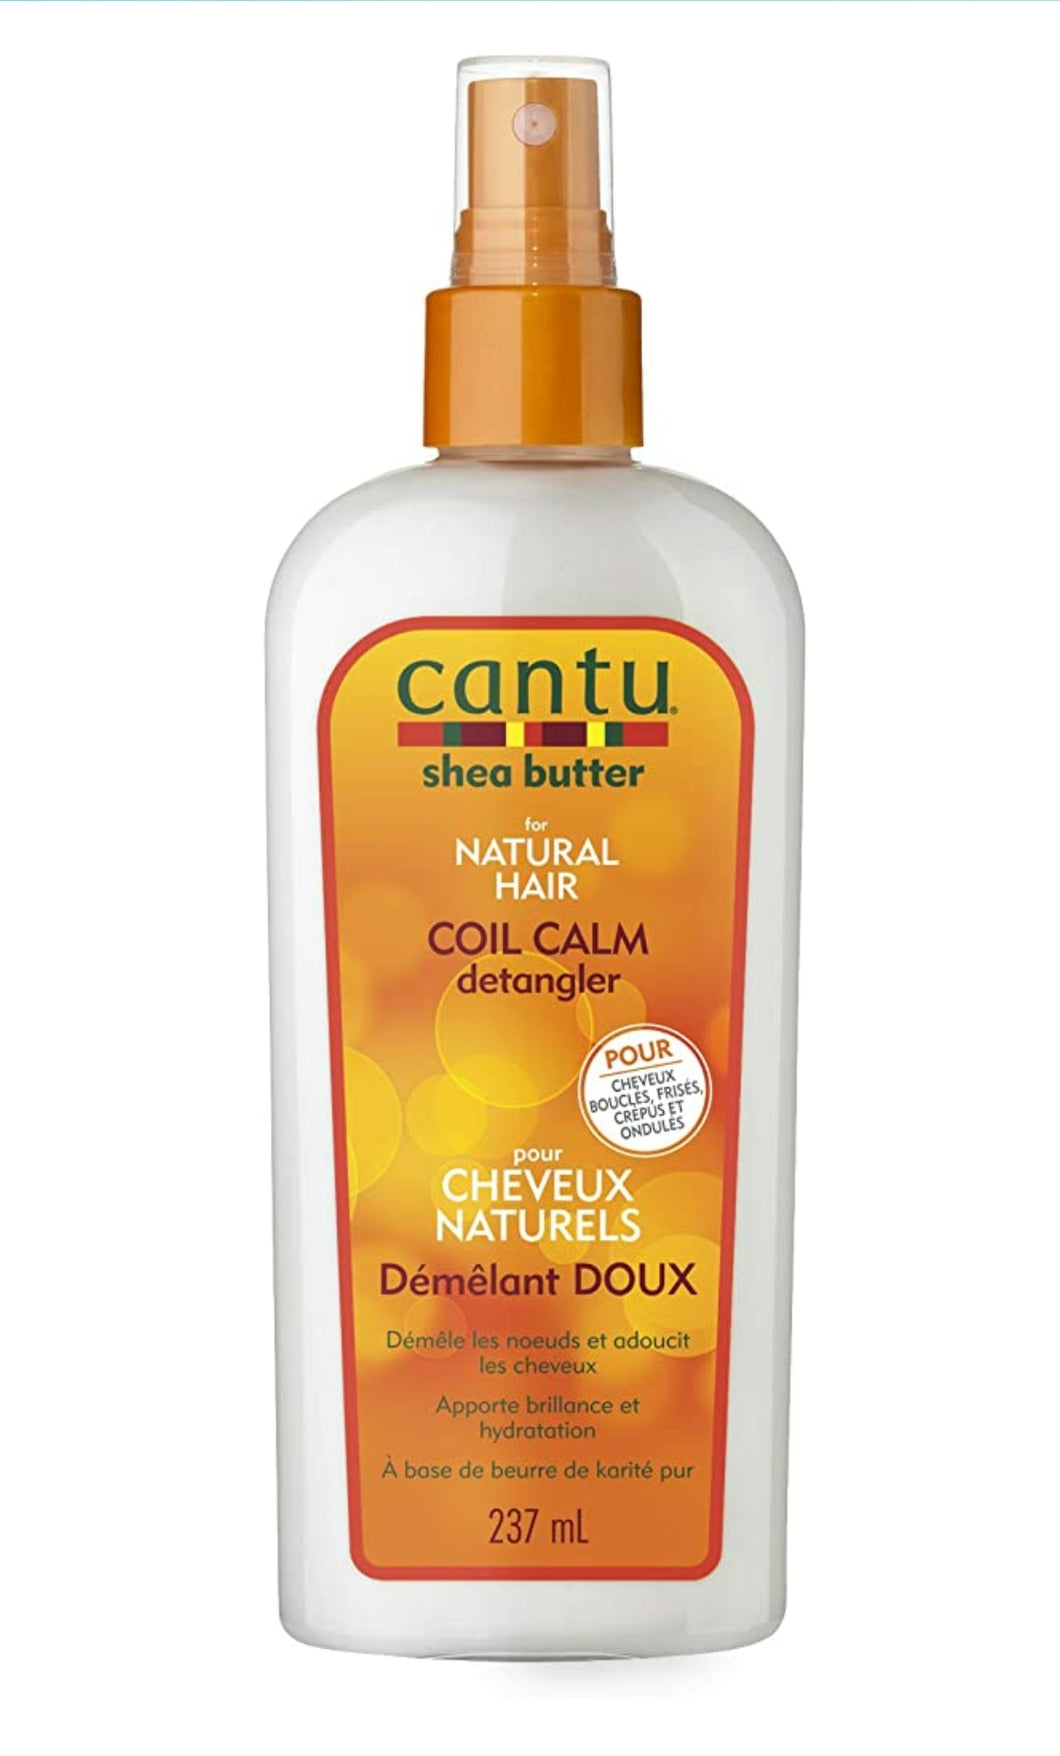 Cantu Shea Butter For Natural Hair Coil Calm Detangler 8 oz